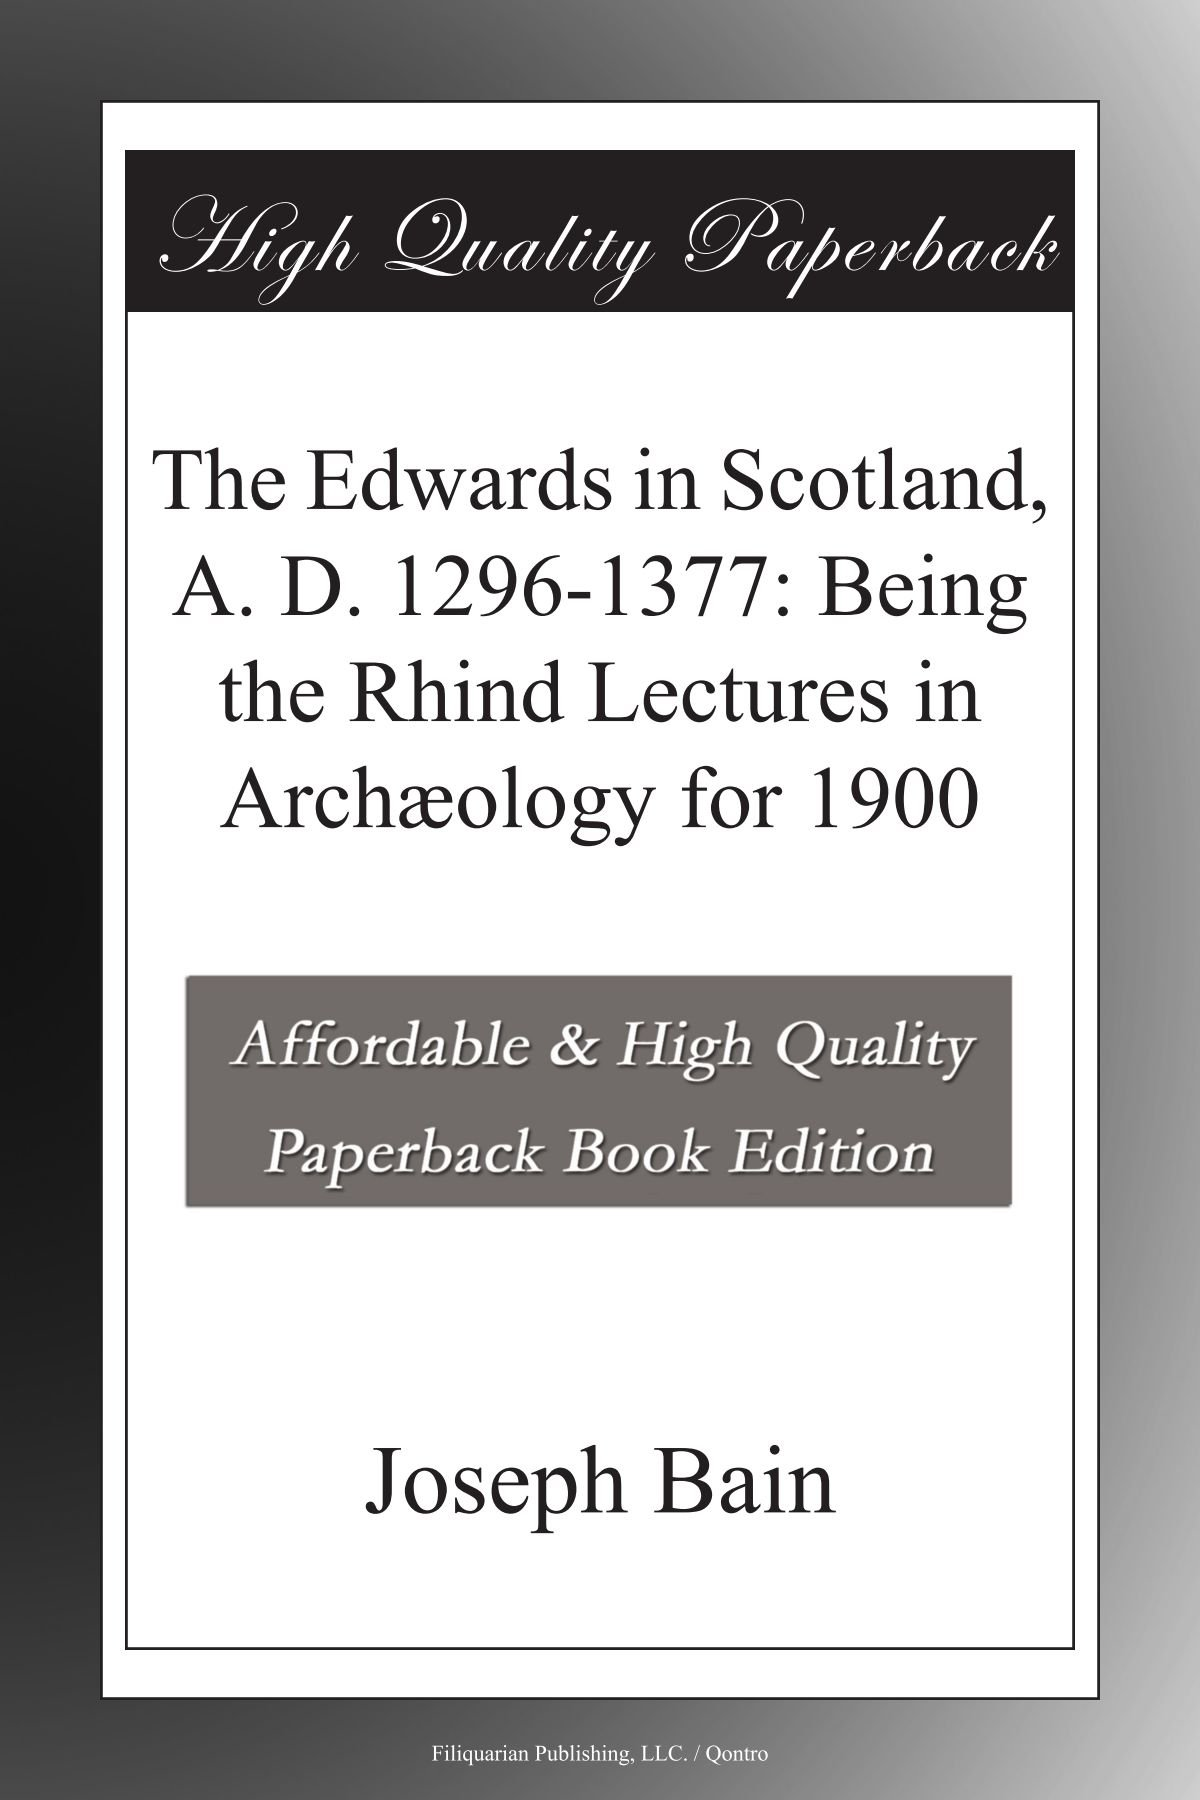 Download The Edwards in Scotland, A. D. 1296-1377: Being the Rhind Lectures in Archæology for 1900 ebook